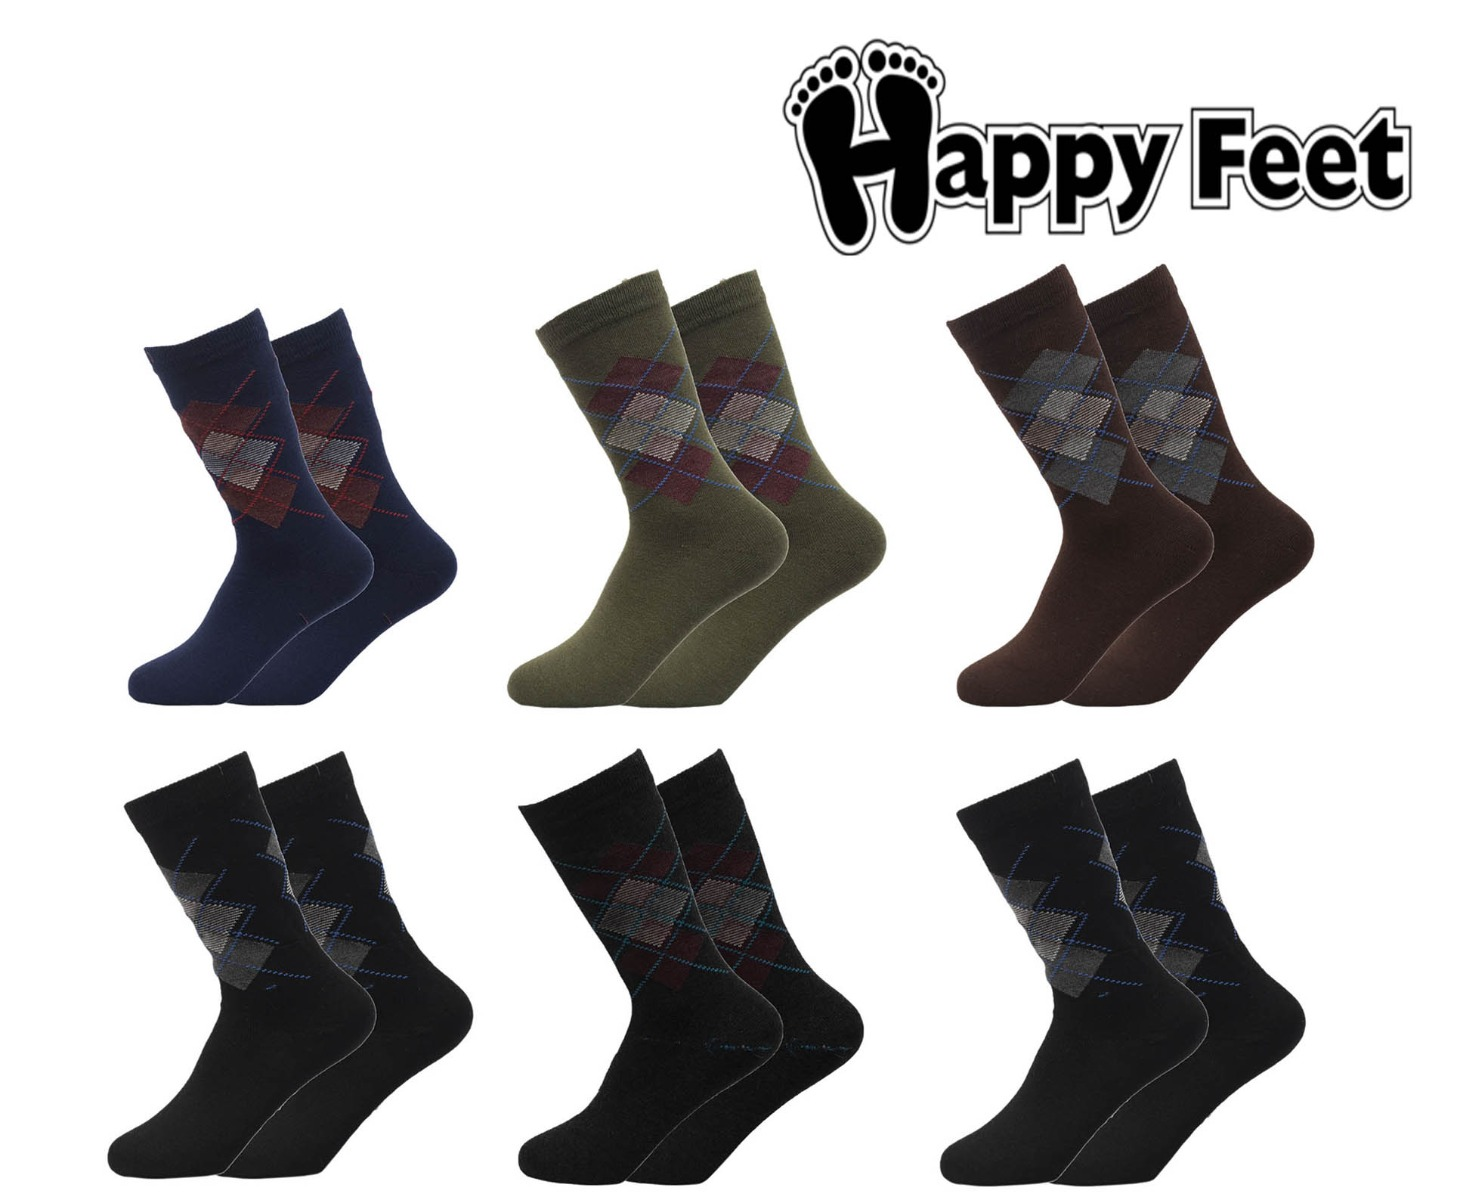 Happy Feet Pack of 6 Pairs of Spider Formal Socks for Men (1051)